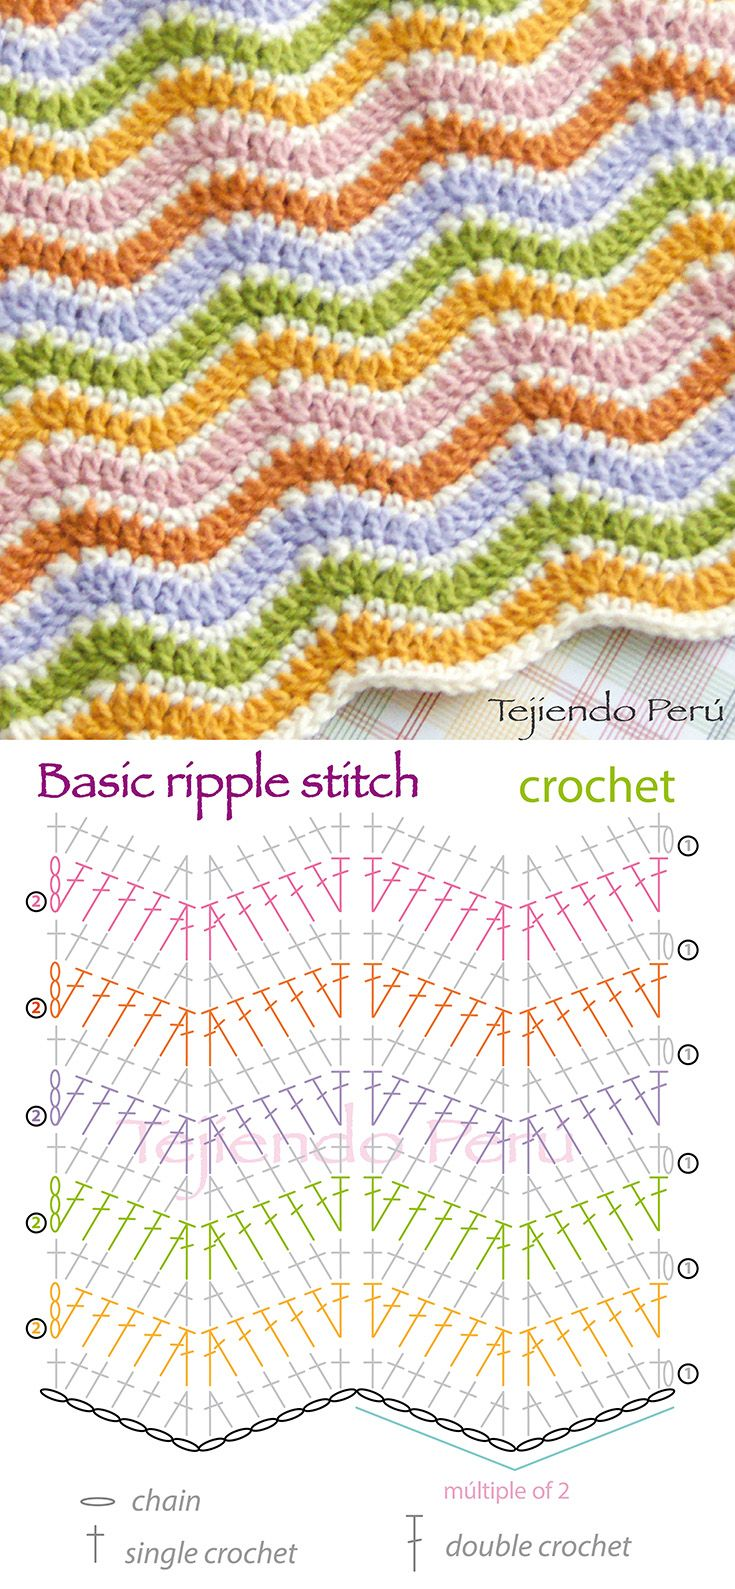 Crochet: basic ripple (chevron) stitch diagram (pattern or chart ...